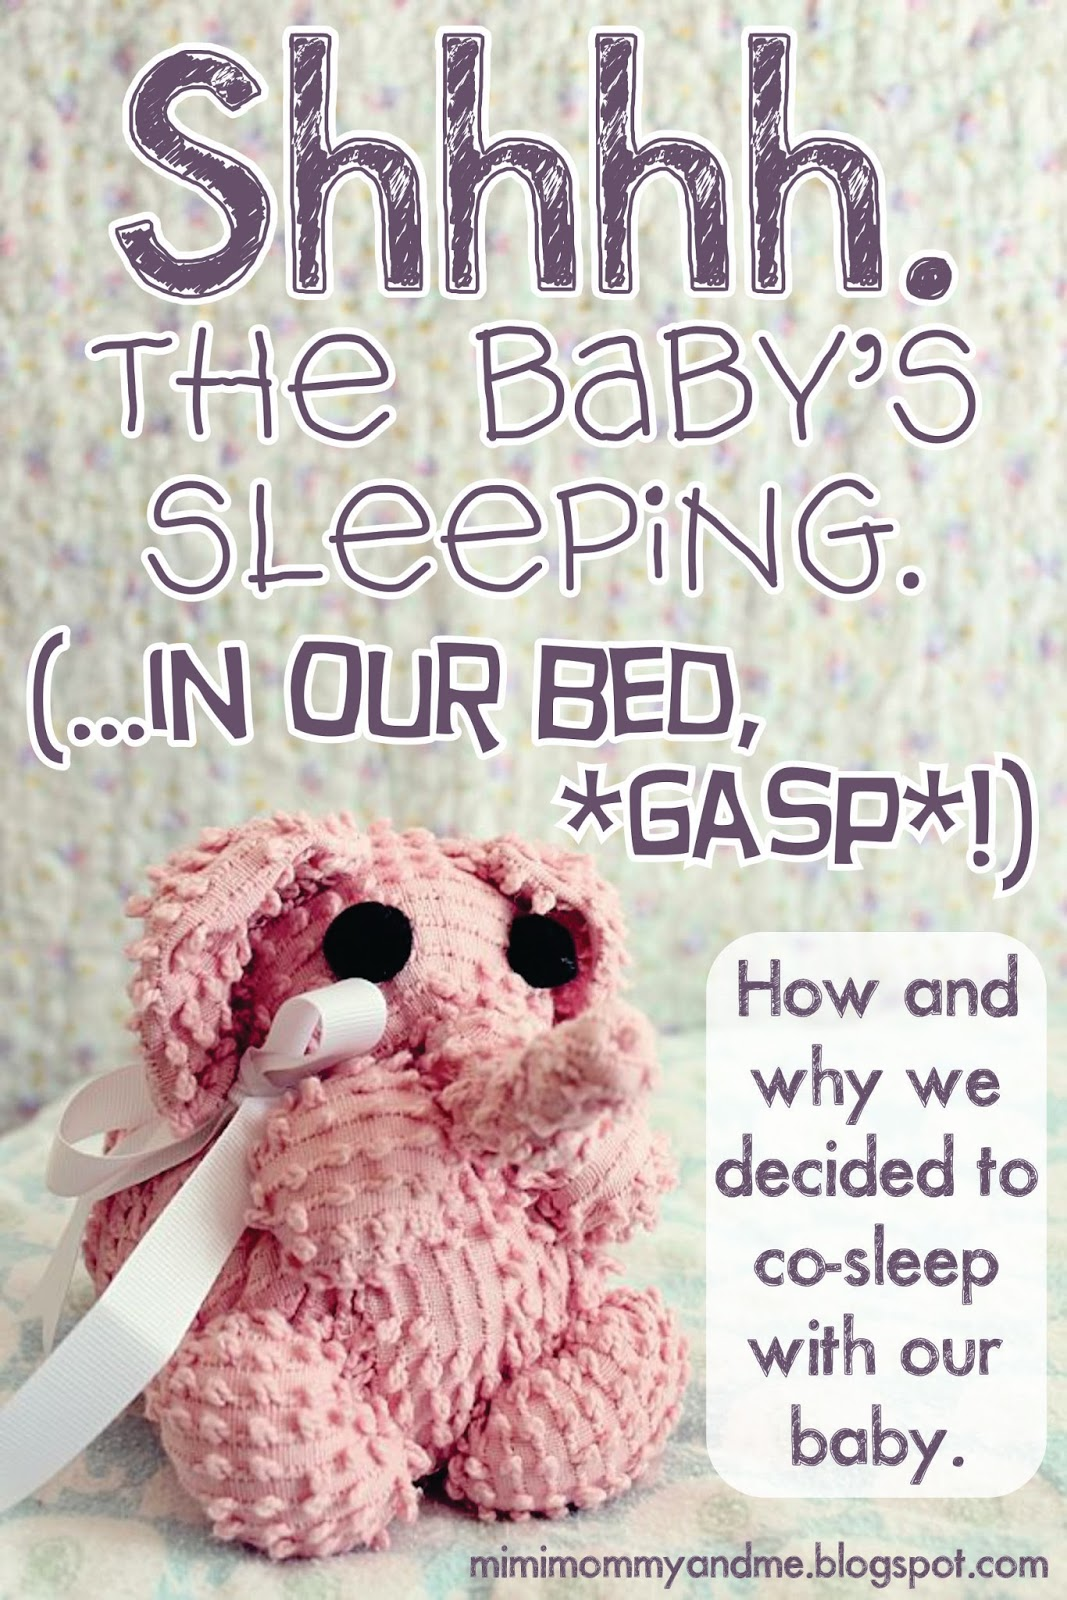 http://mimimommyandme.blogspot.com/2014/05/co-sleeping-shhhh-babys-sleeping-in-our.html #cosleeping #co-sleeping